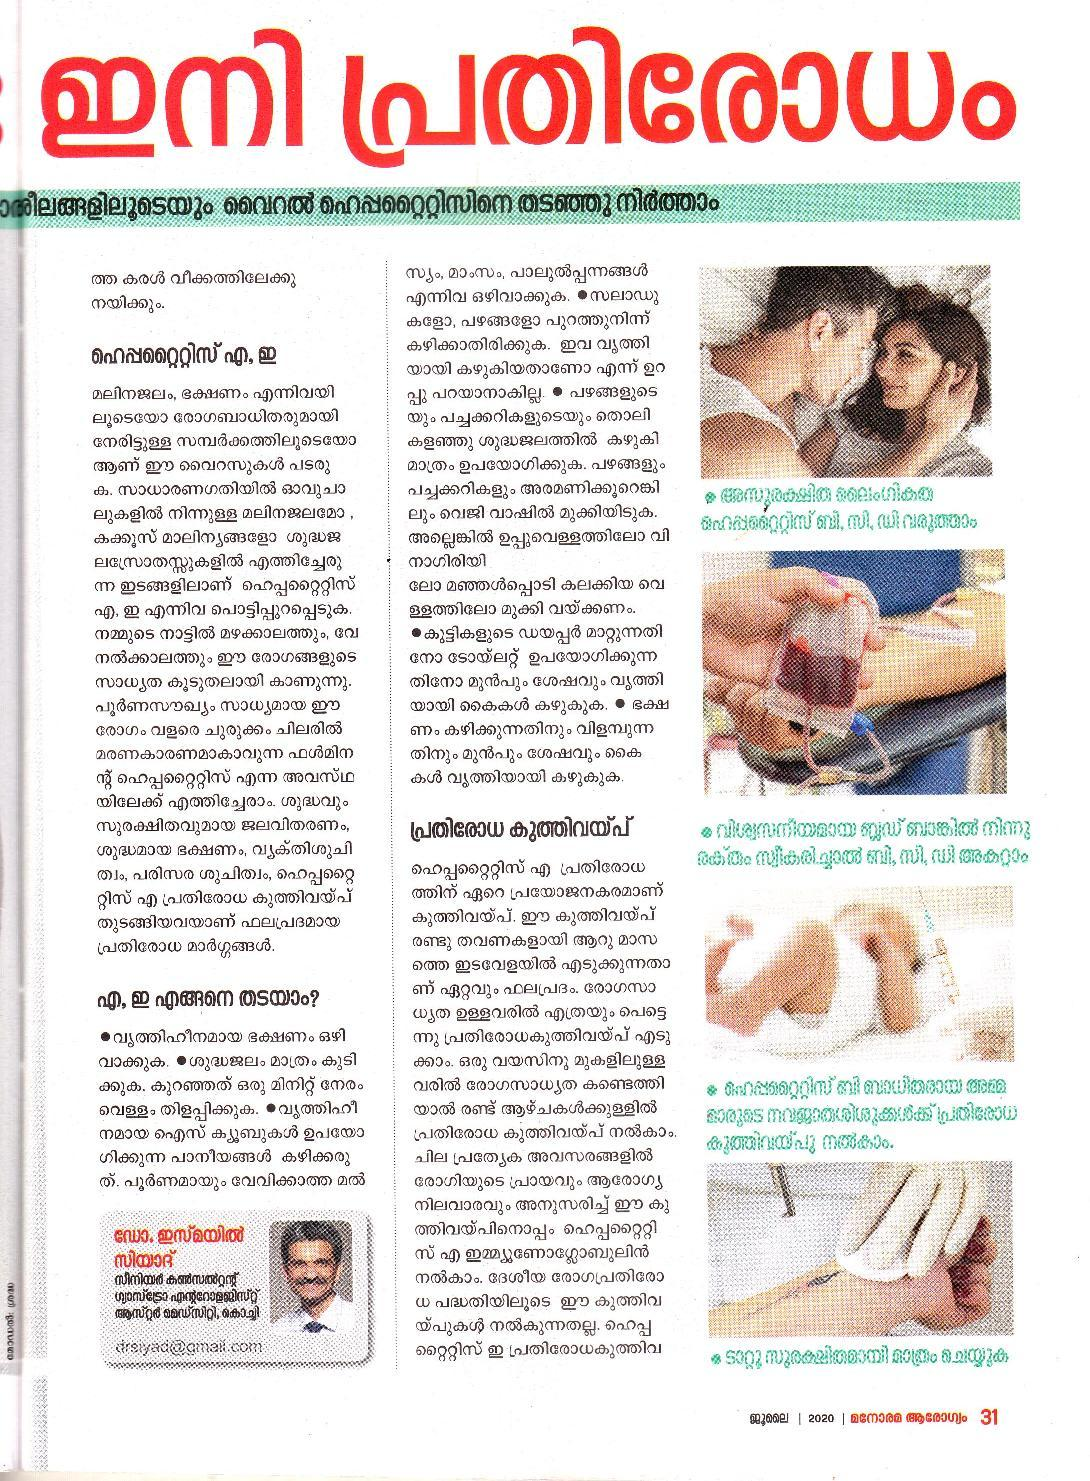 July 20200 Manorama Arogyam Pg 30 34 page 002